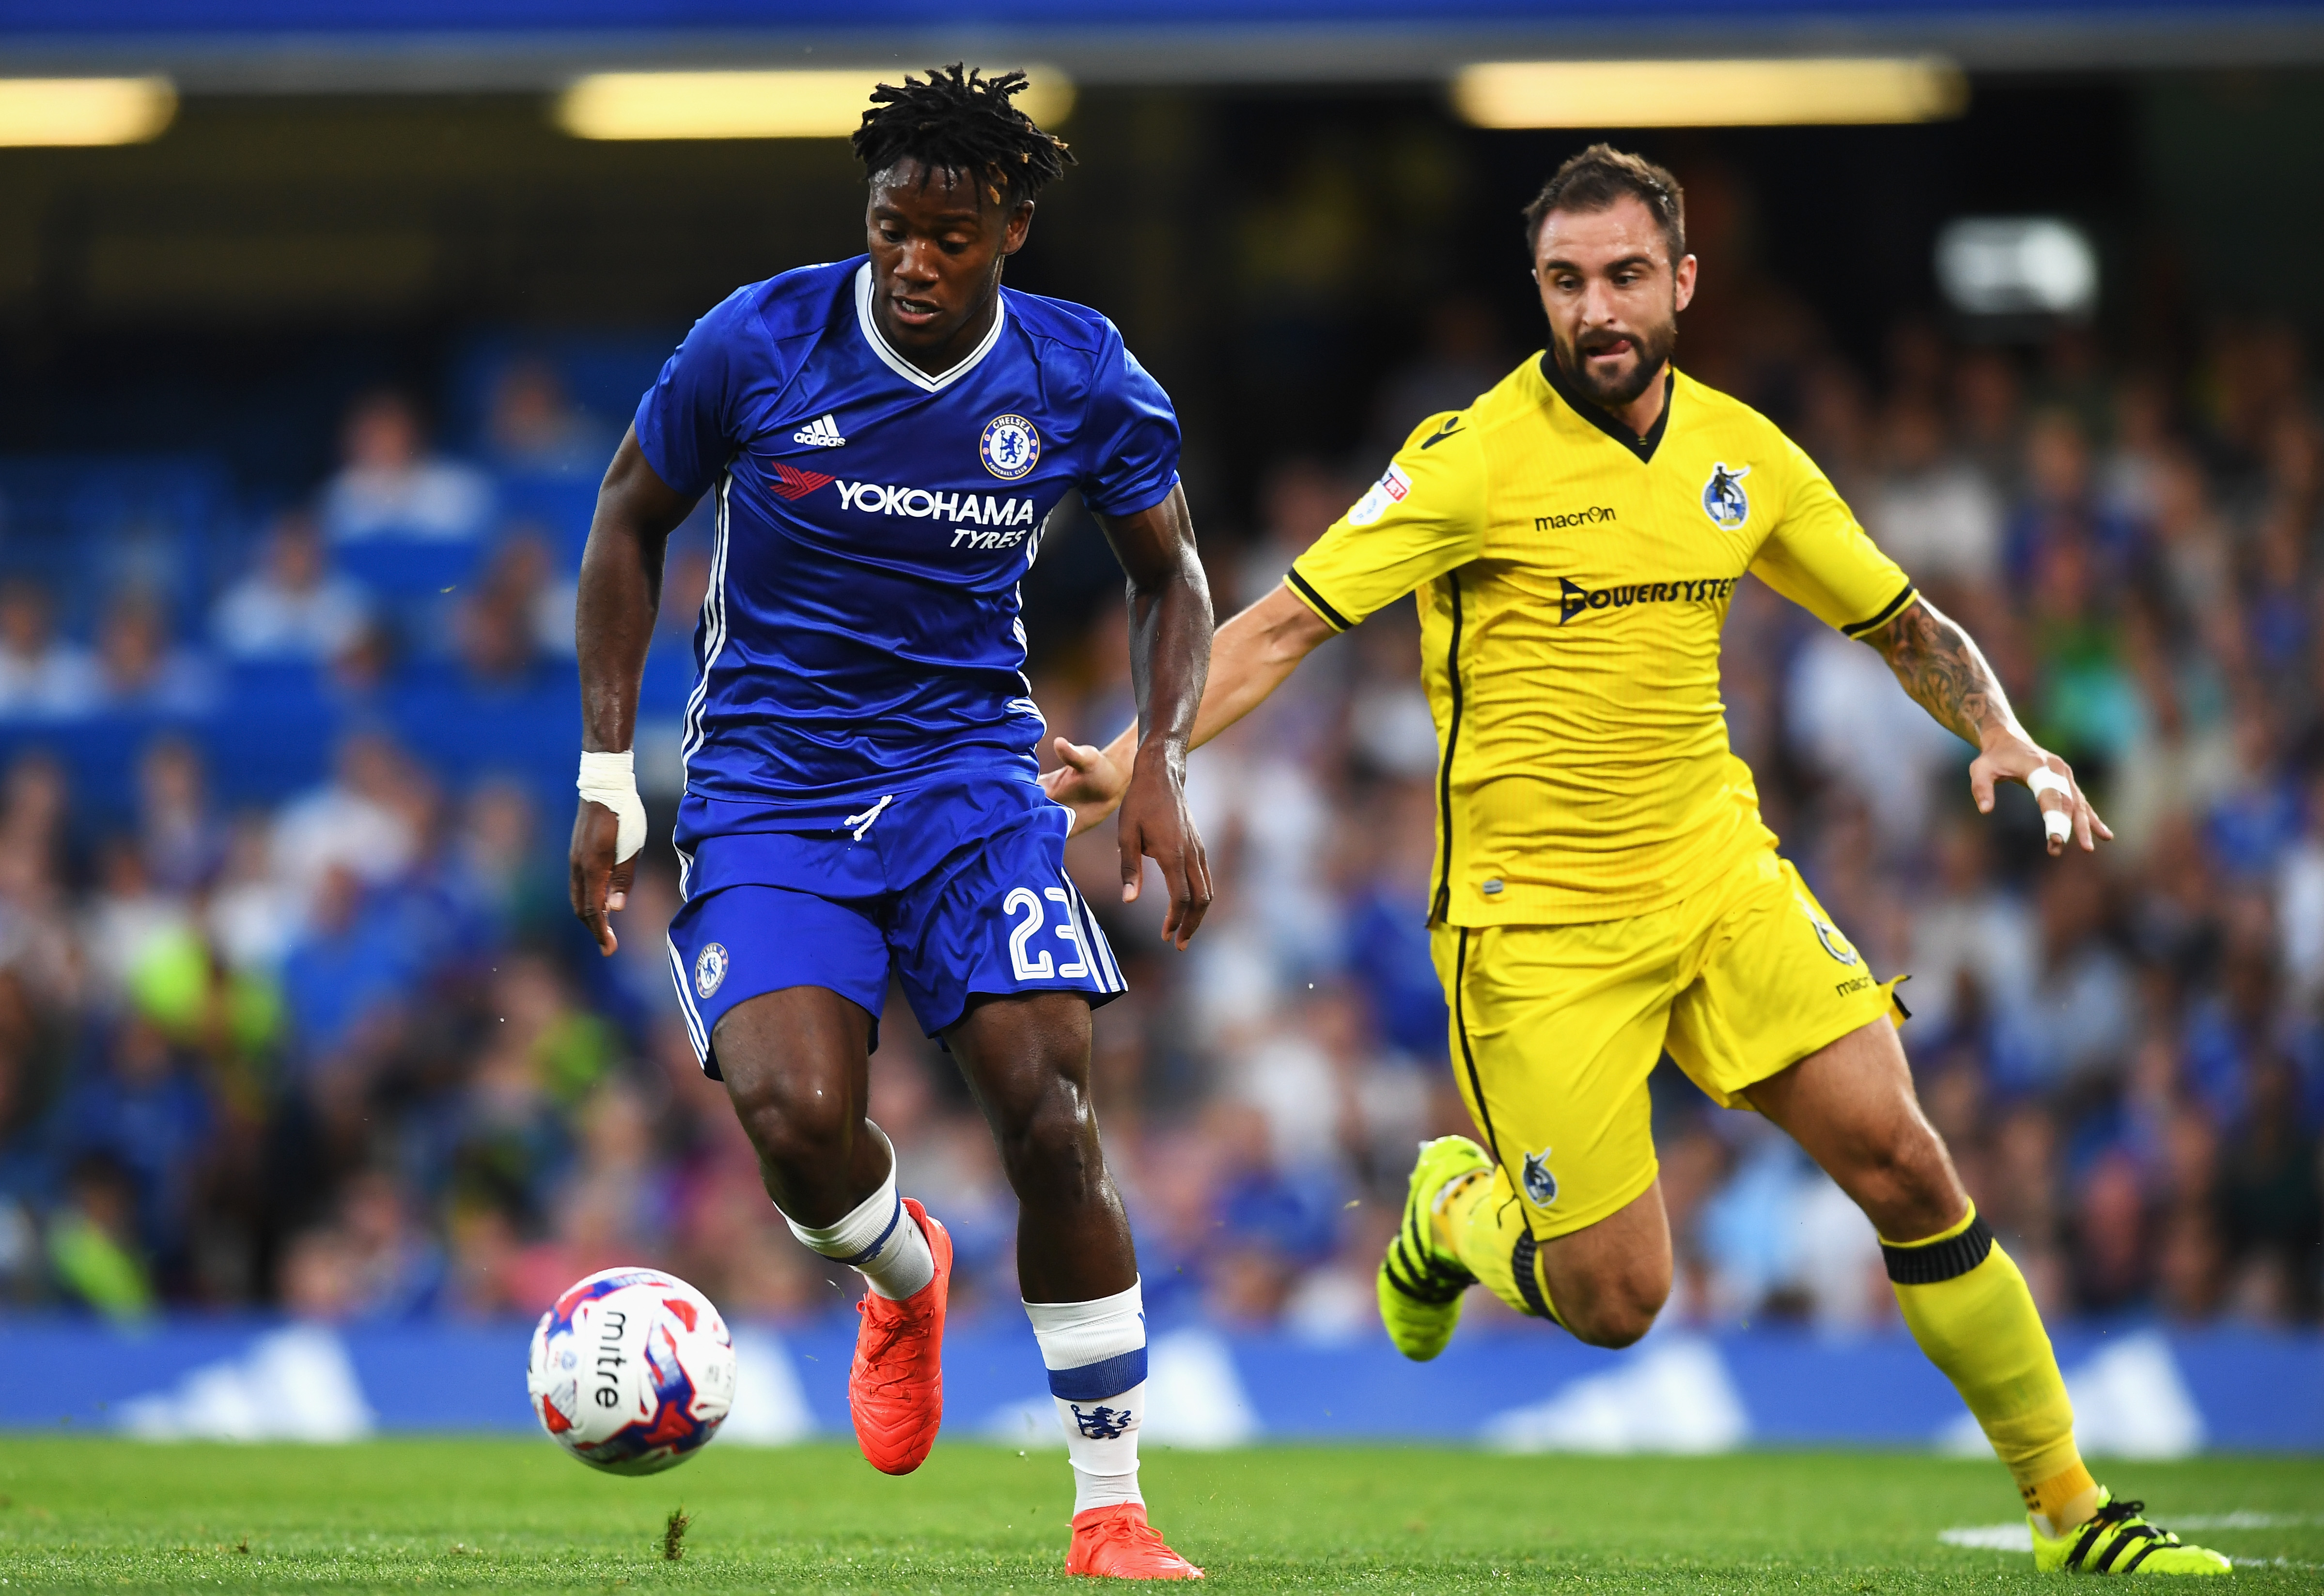 LONDON, ENGLAND - AUGUST 23: Michy Batshuayi of Chelsea is closed down by Peter Hartley of Bristol Rovers during the EFL Cup second round match between Chelsea and Bristol Rovers at Stamford Bridge on August 23, 2016 in London, England. (Photo by Michael Regan/Getty Images )